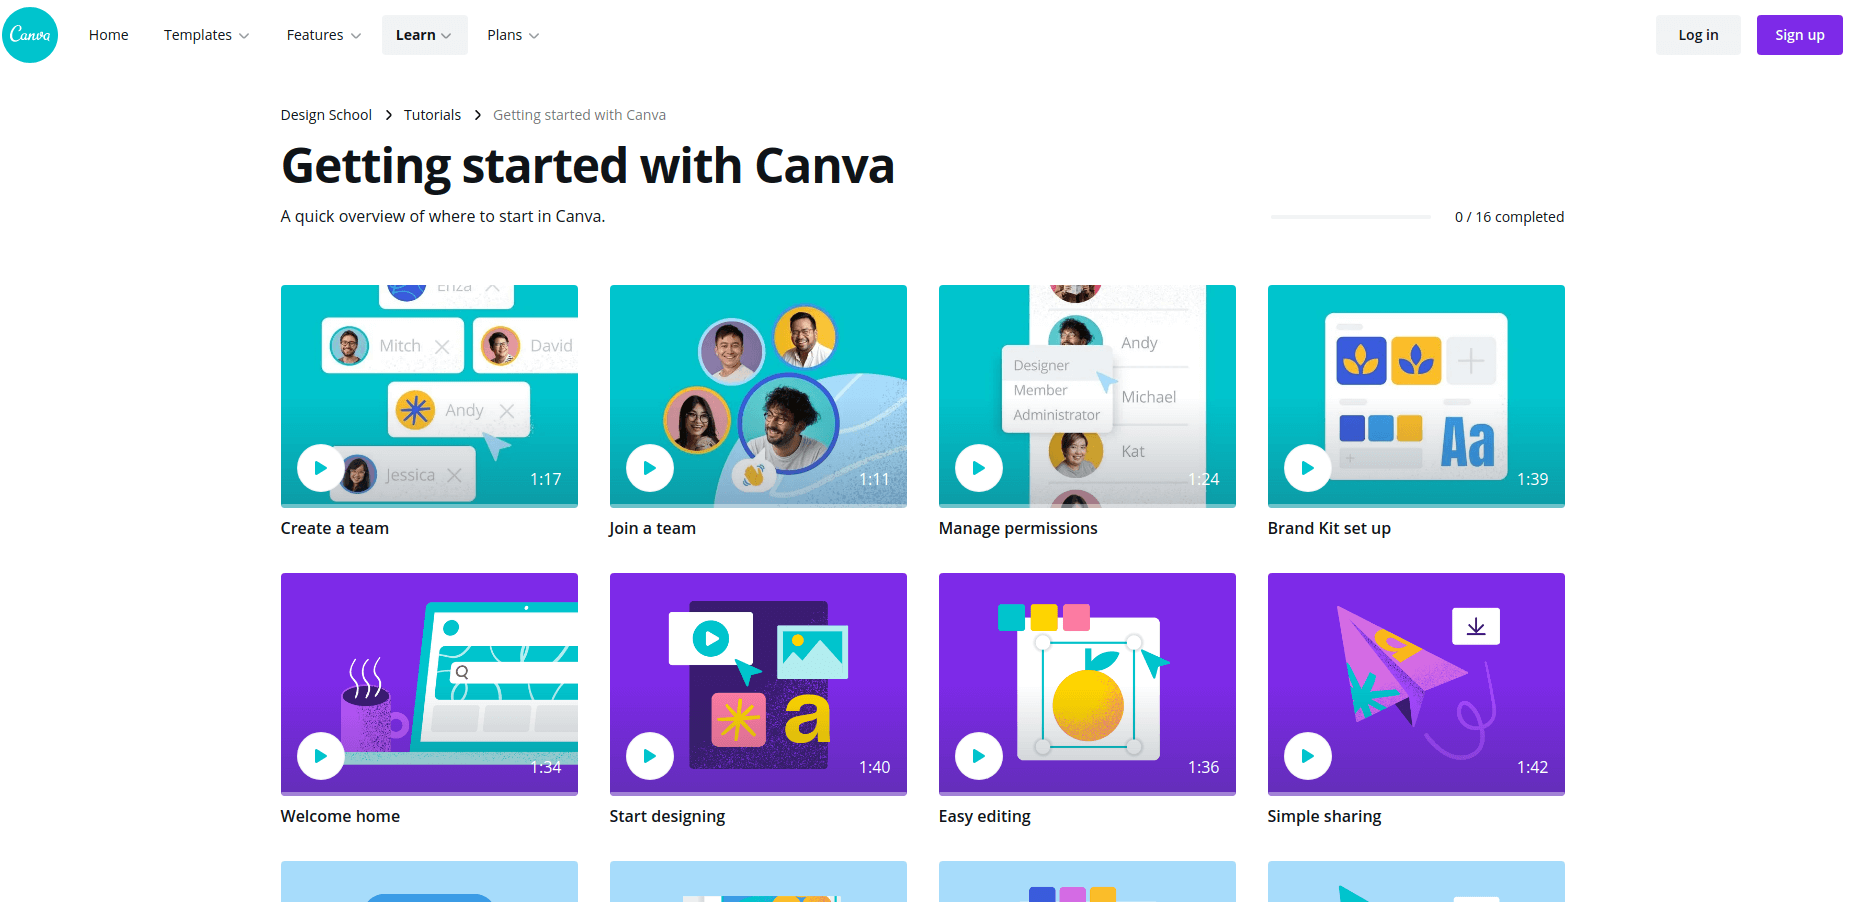 Canva Design School adds more value within their support help center. (Screenshot)